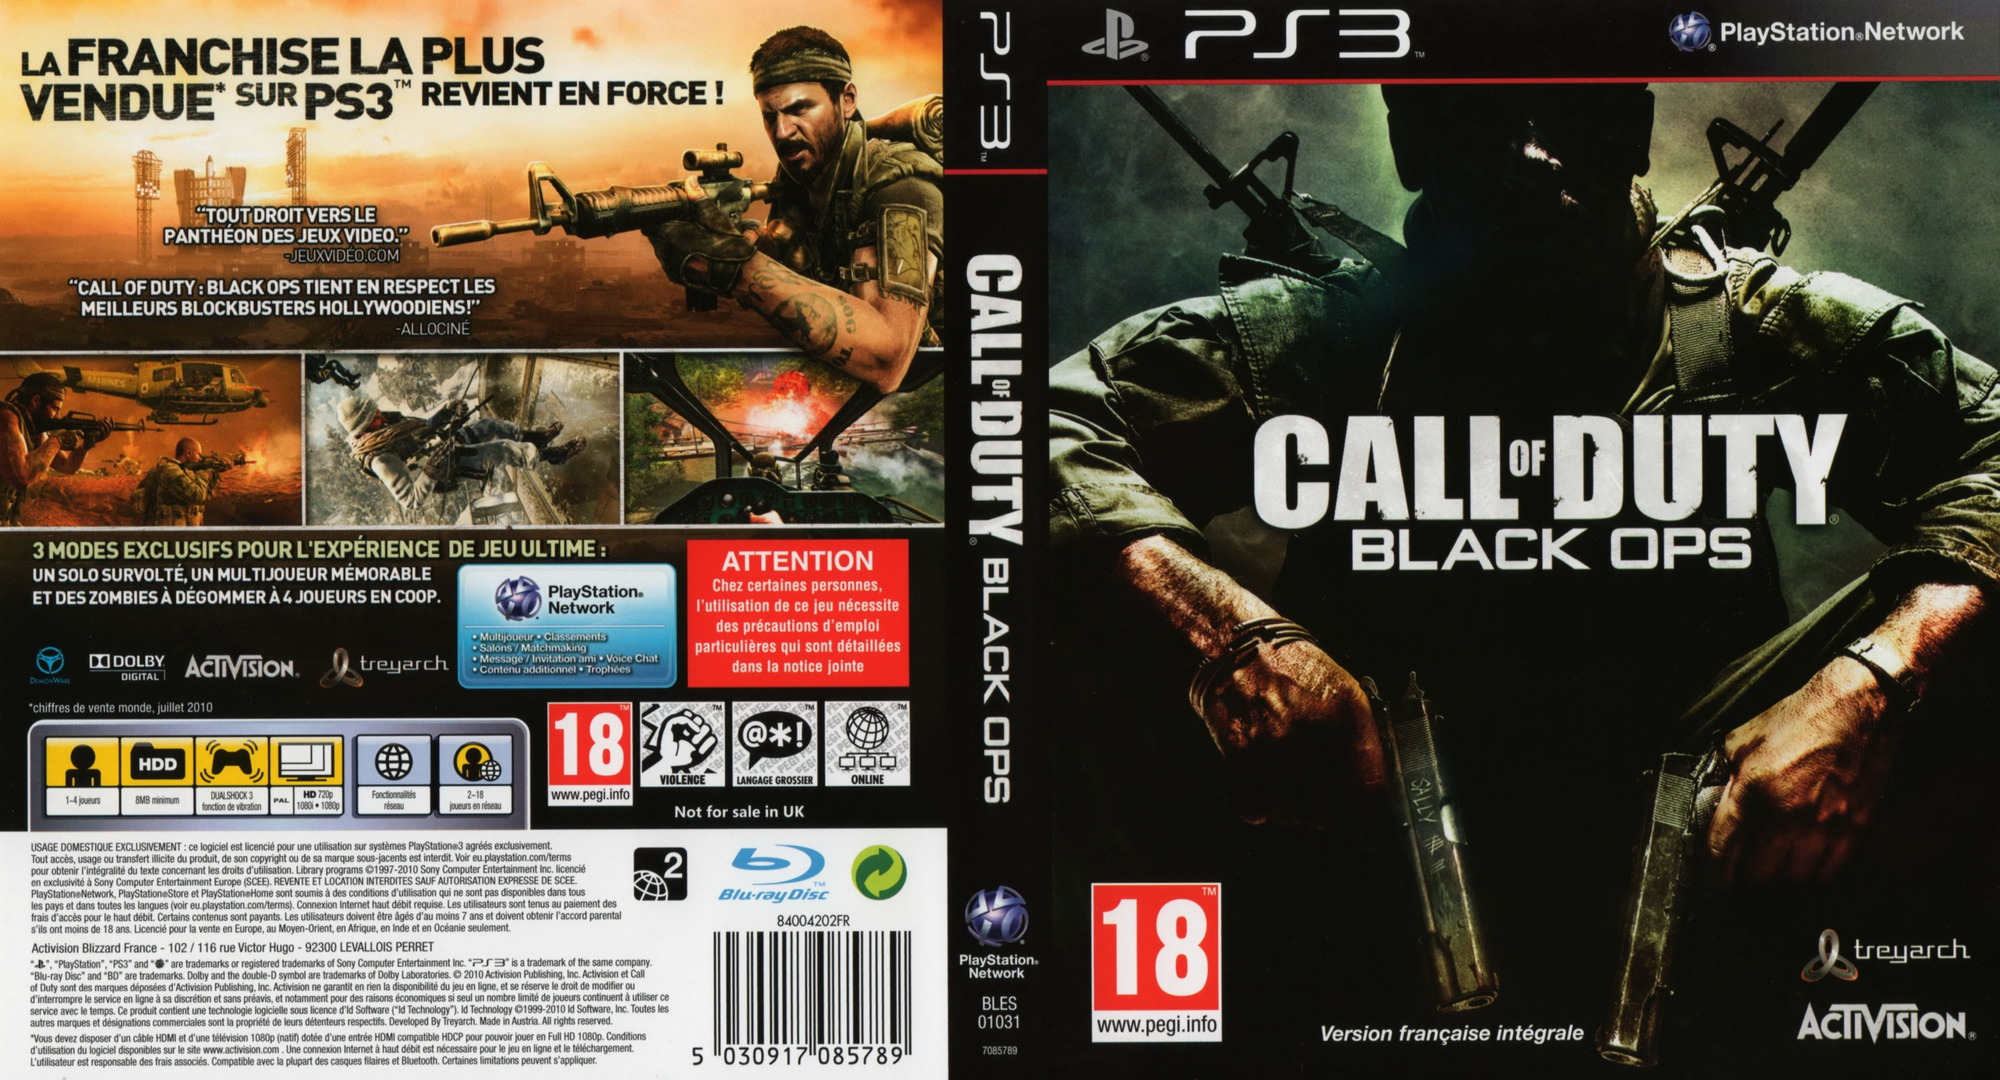 Call of duty black ops 2 - 5 10